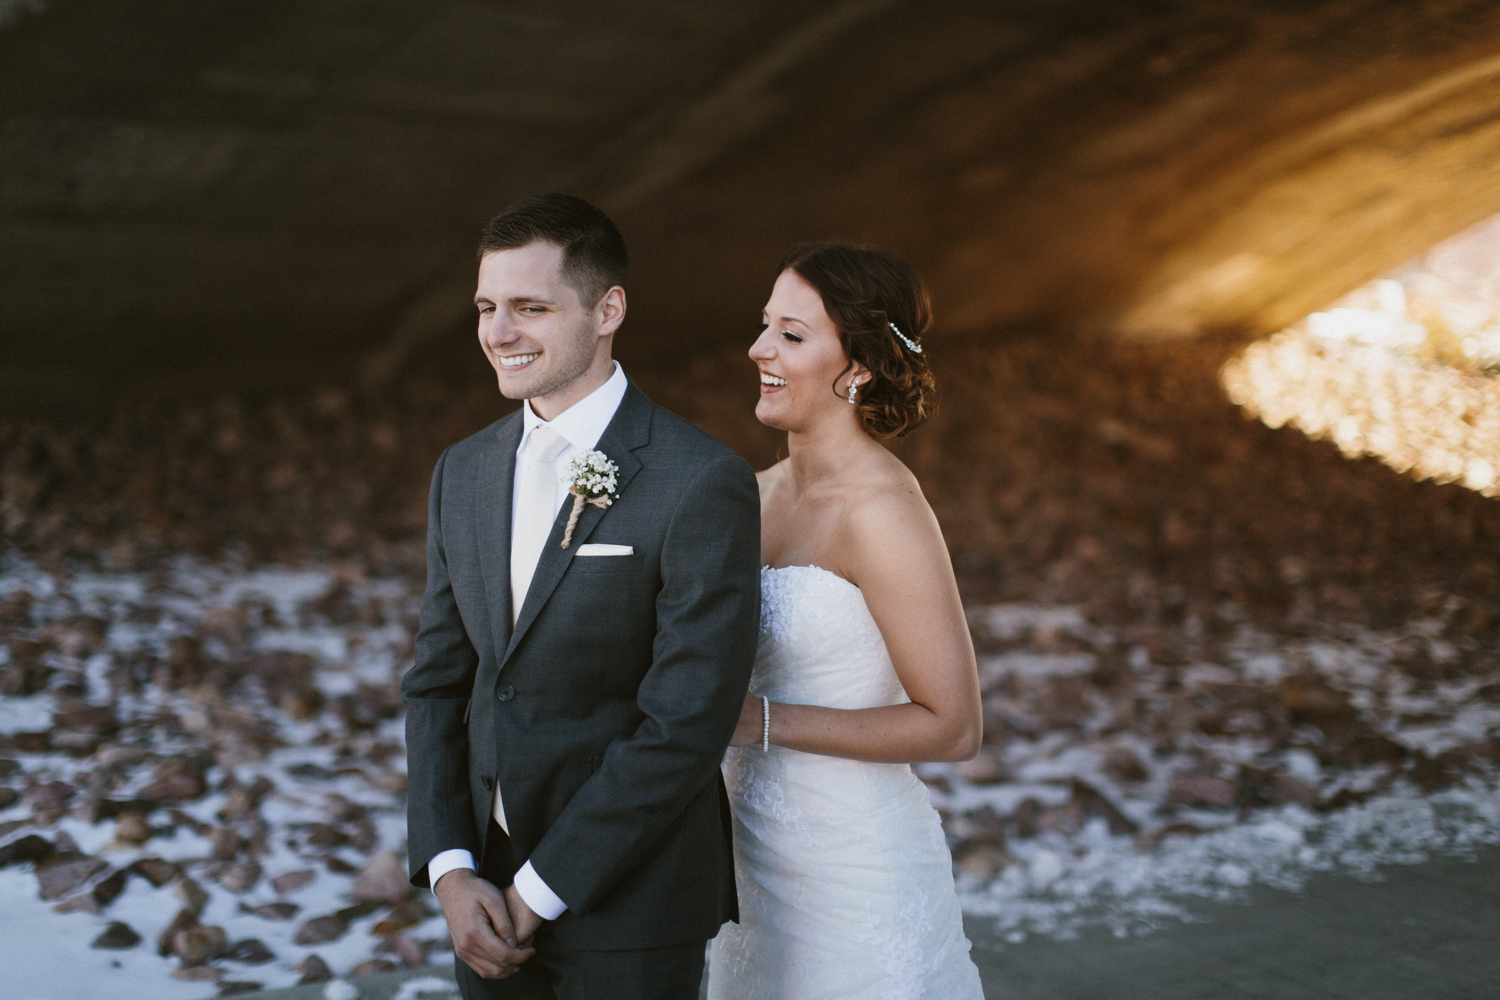 israel&aubrey_siouxfalls_wedding_photographer_35.jpg